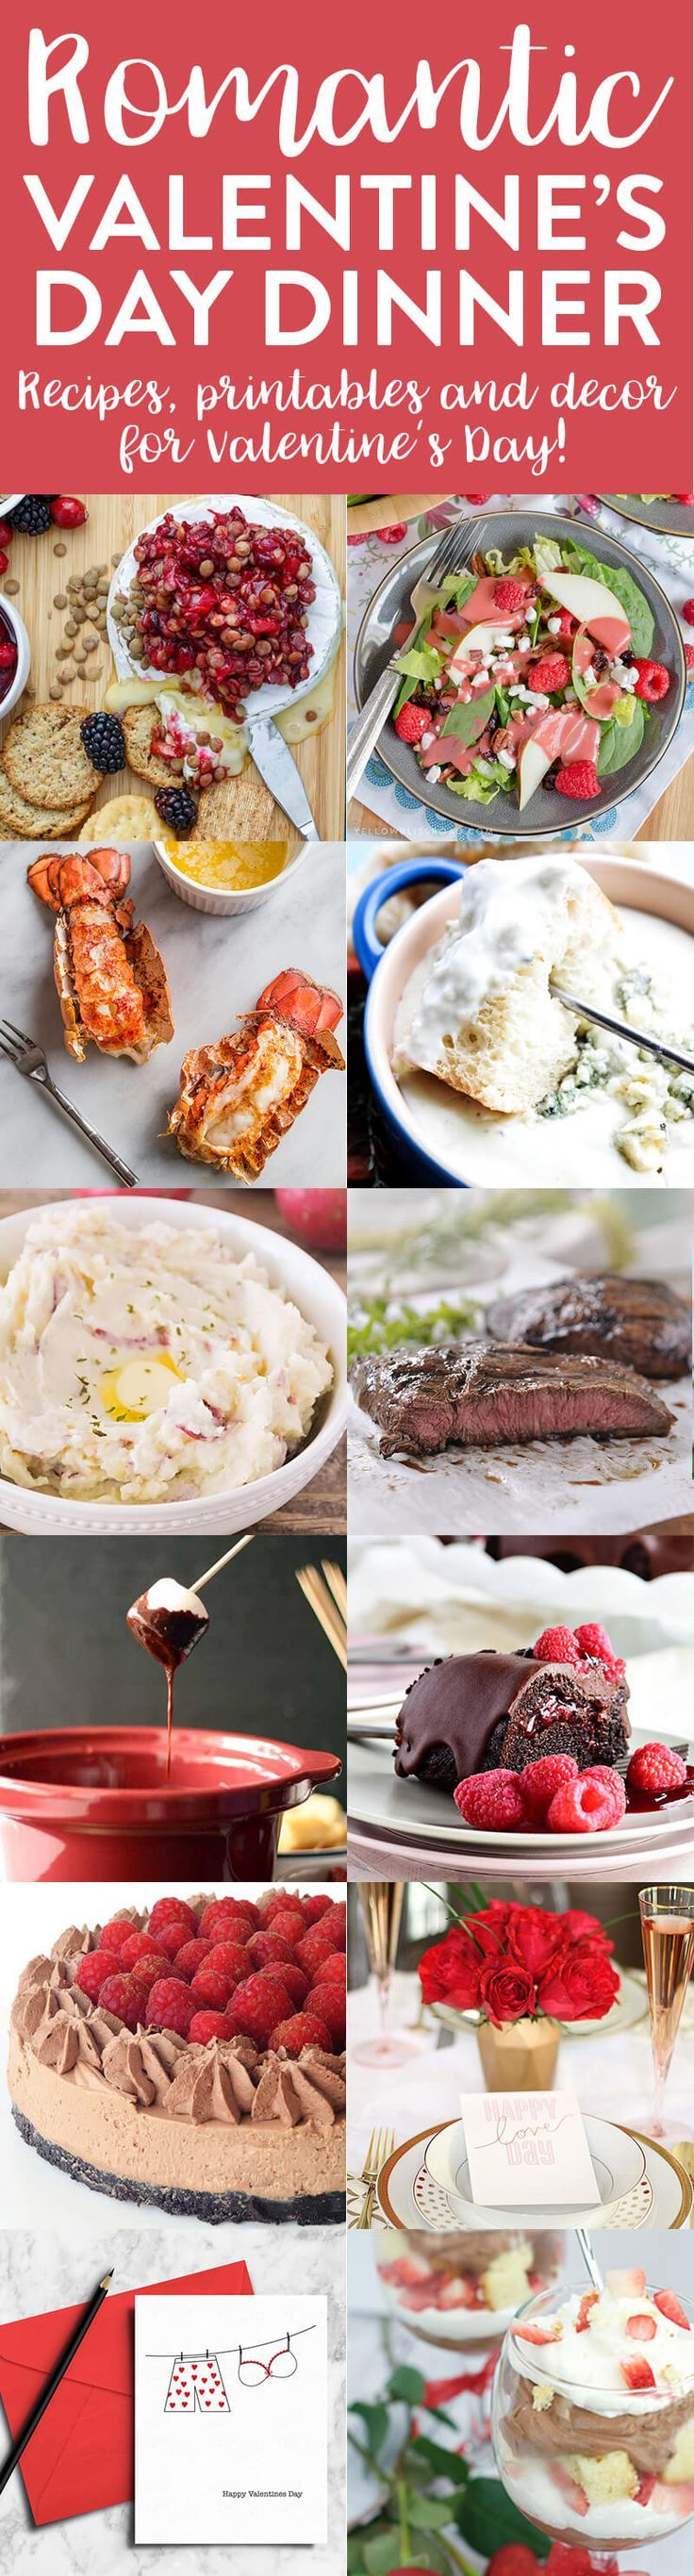 Best 25+ Romantic meals ideas on Pinterest | Valentines day dinner ...